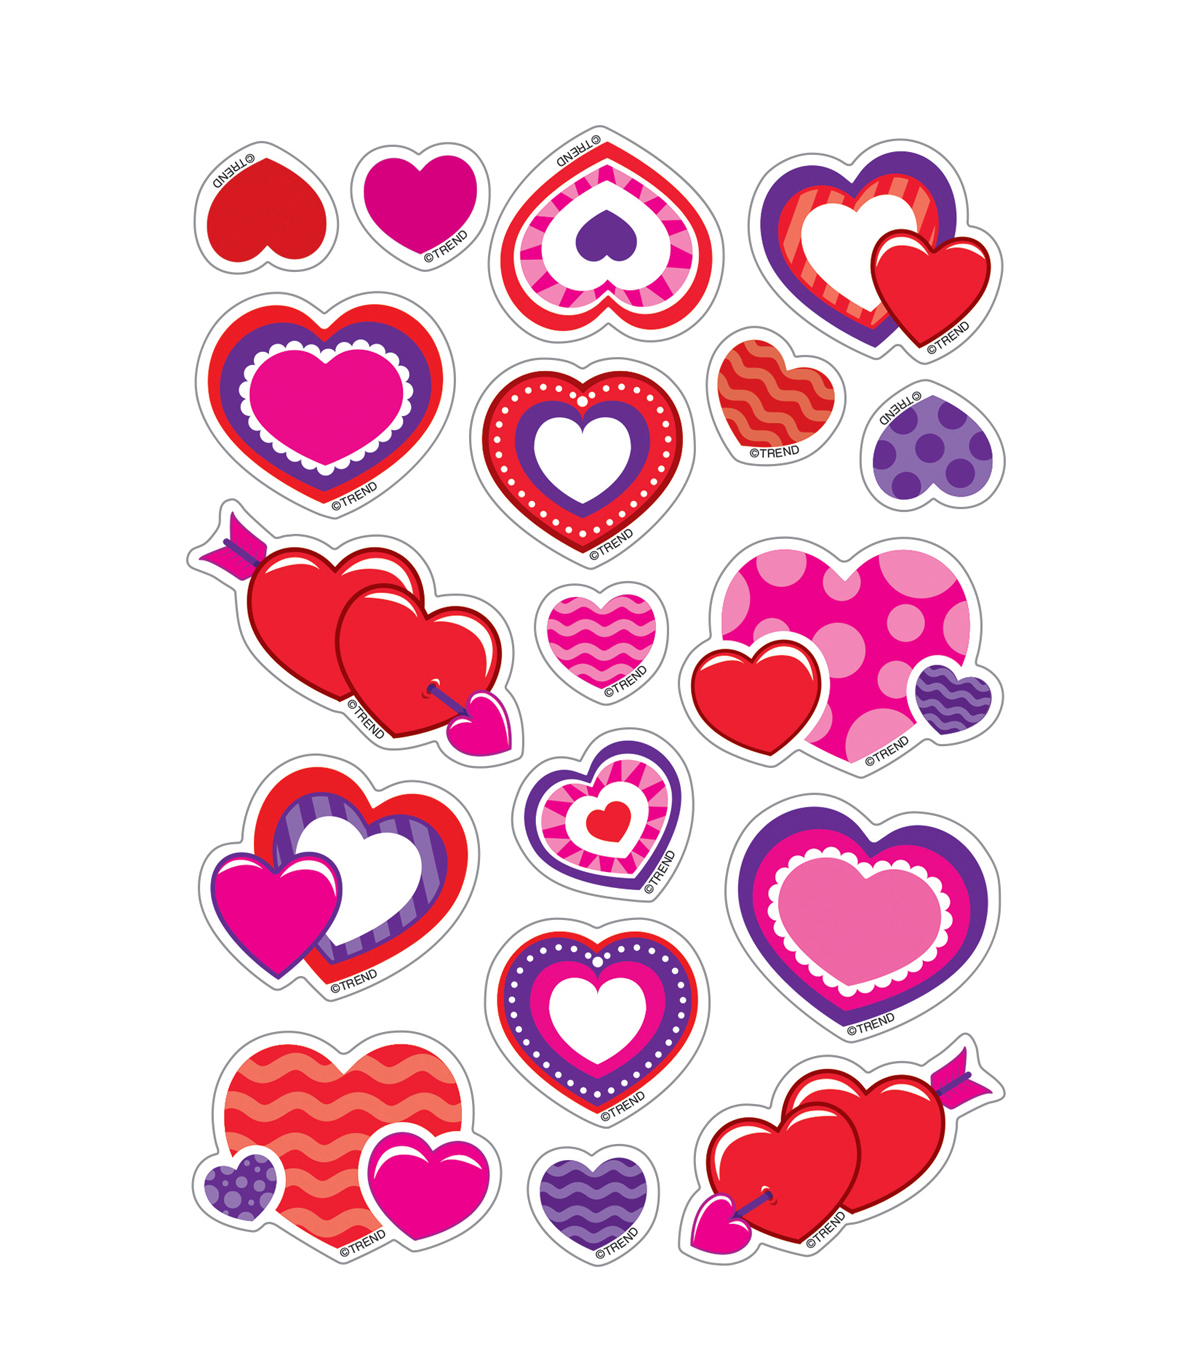 Sweet Hearts-Cherry Mixed Shapes Stinky Stickers 6 Packs